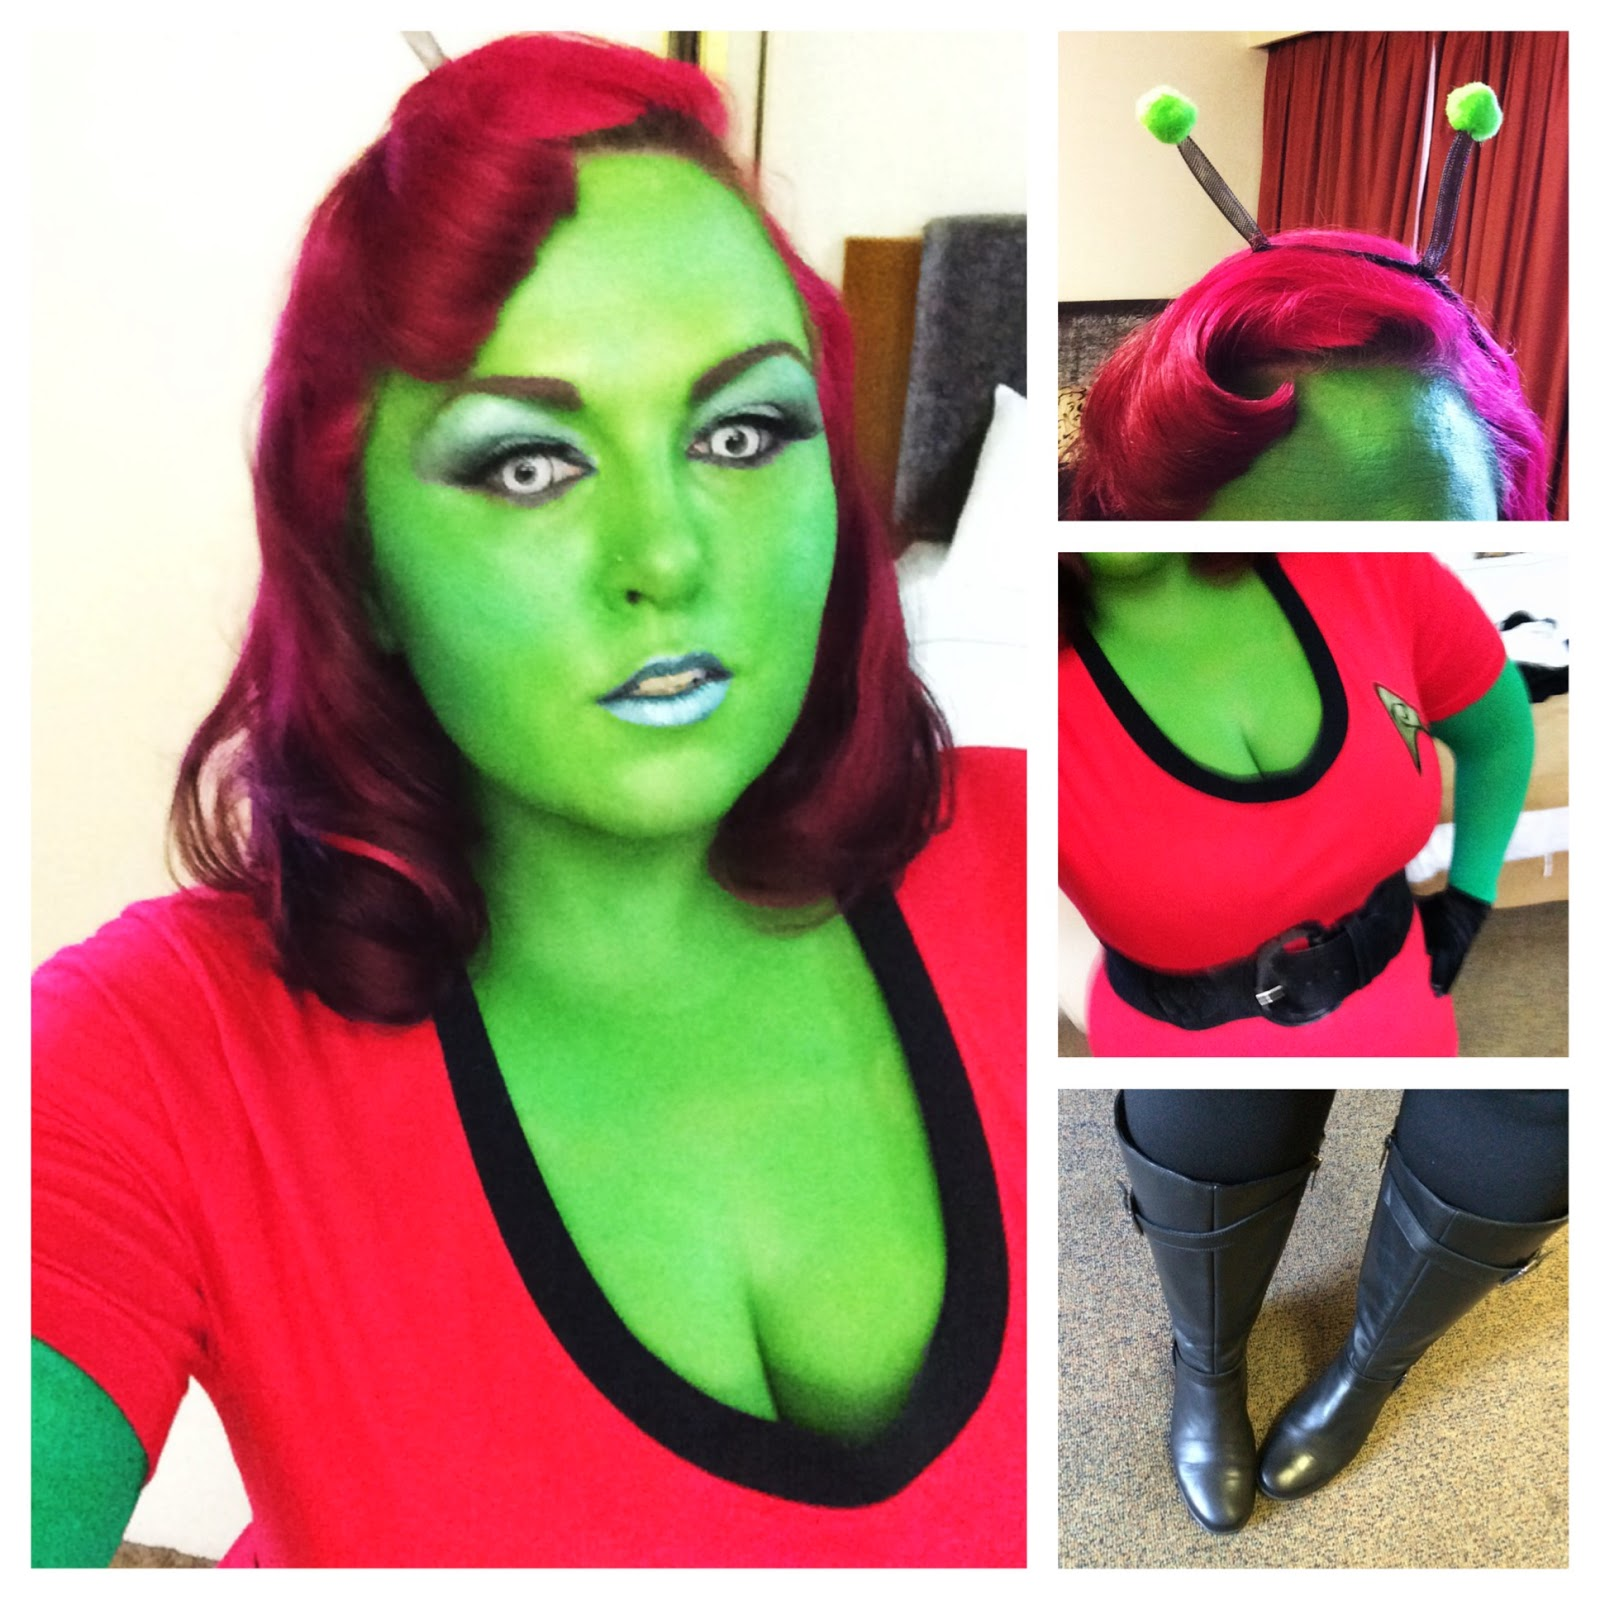 Sunday May 25 2014  sc 1 st  Quirky and Curvy & Cosplay - A little on the green side. | Quirky and Curvy